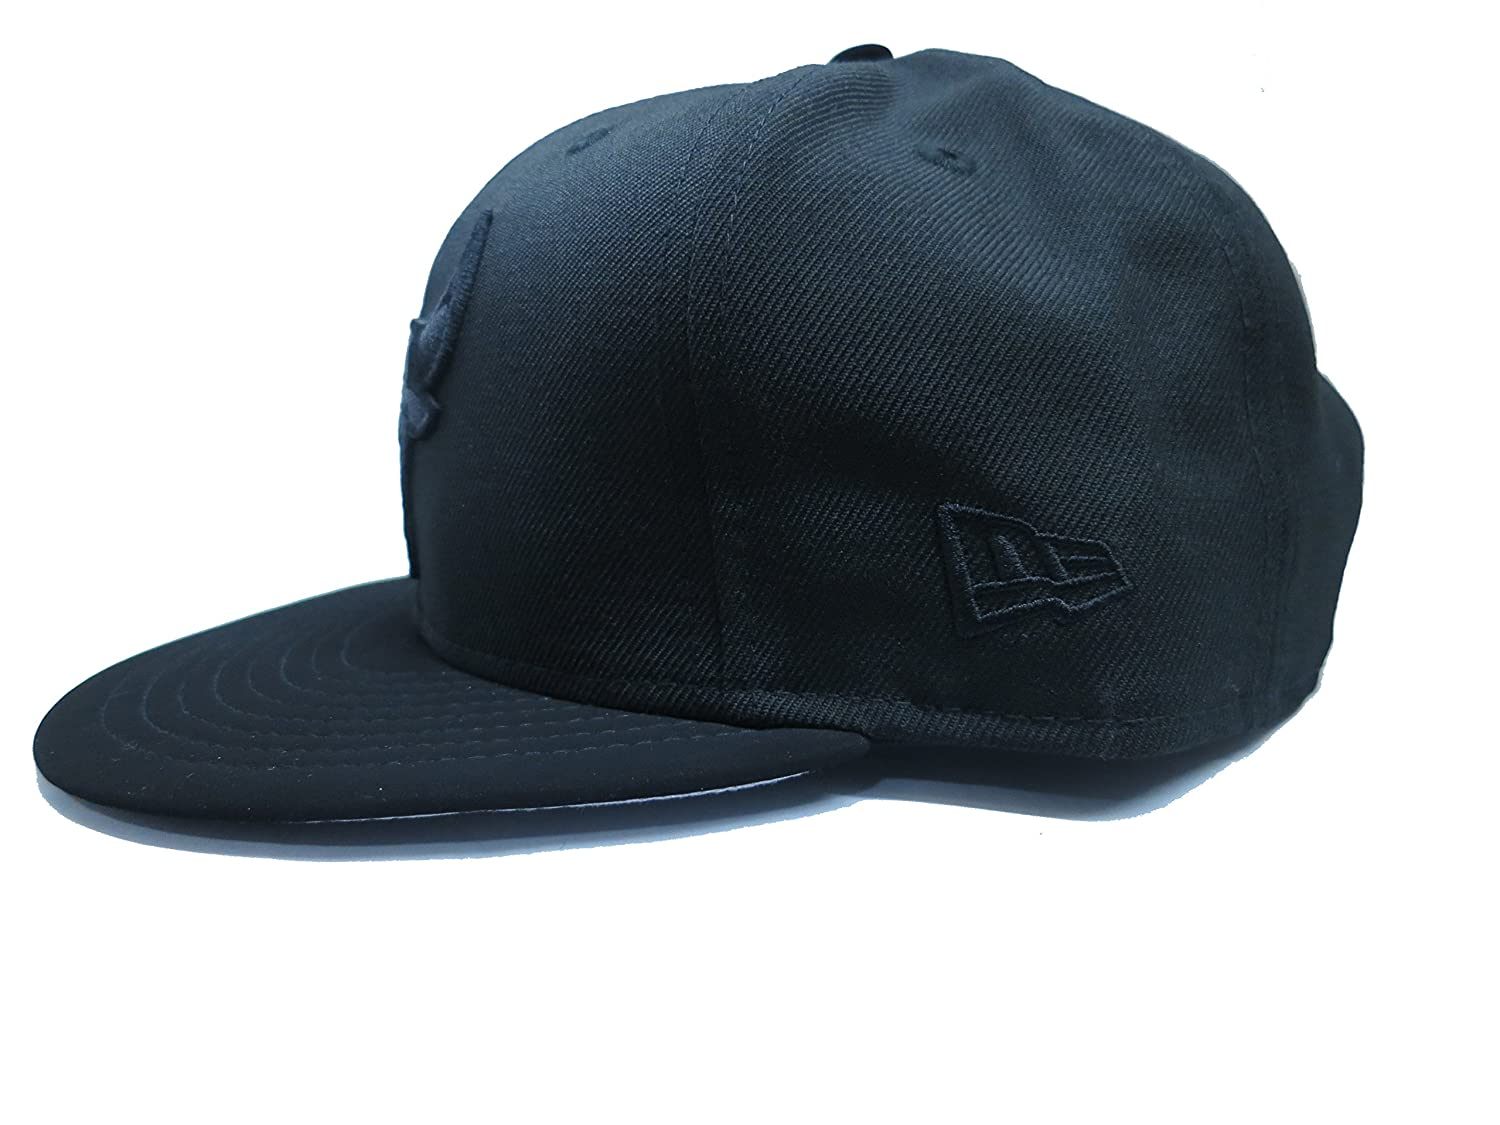 cbab142bf0b New Era Chicago Bulls Snapback Cap With Suede Visor by (Black) at Amazon  Men s Clothing store